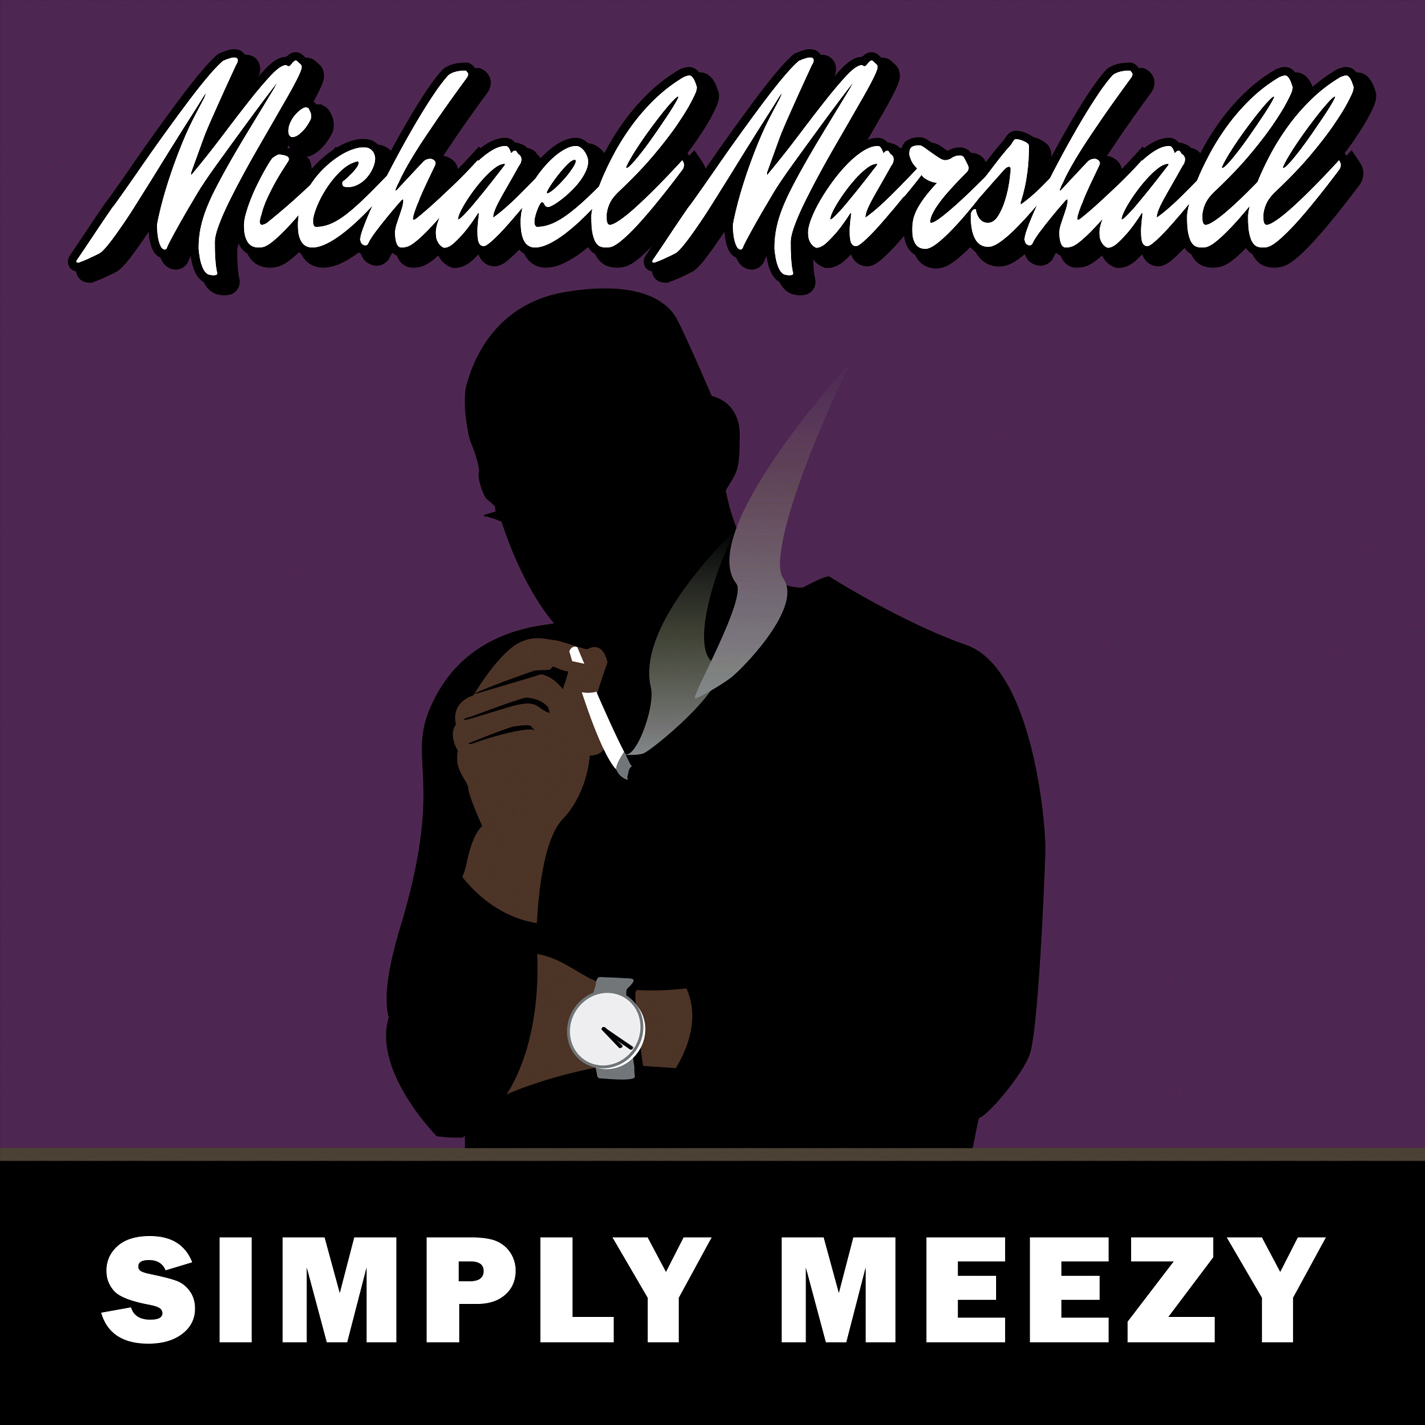 SimplyMeezy-Purple.jpg